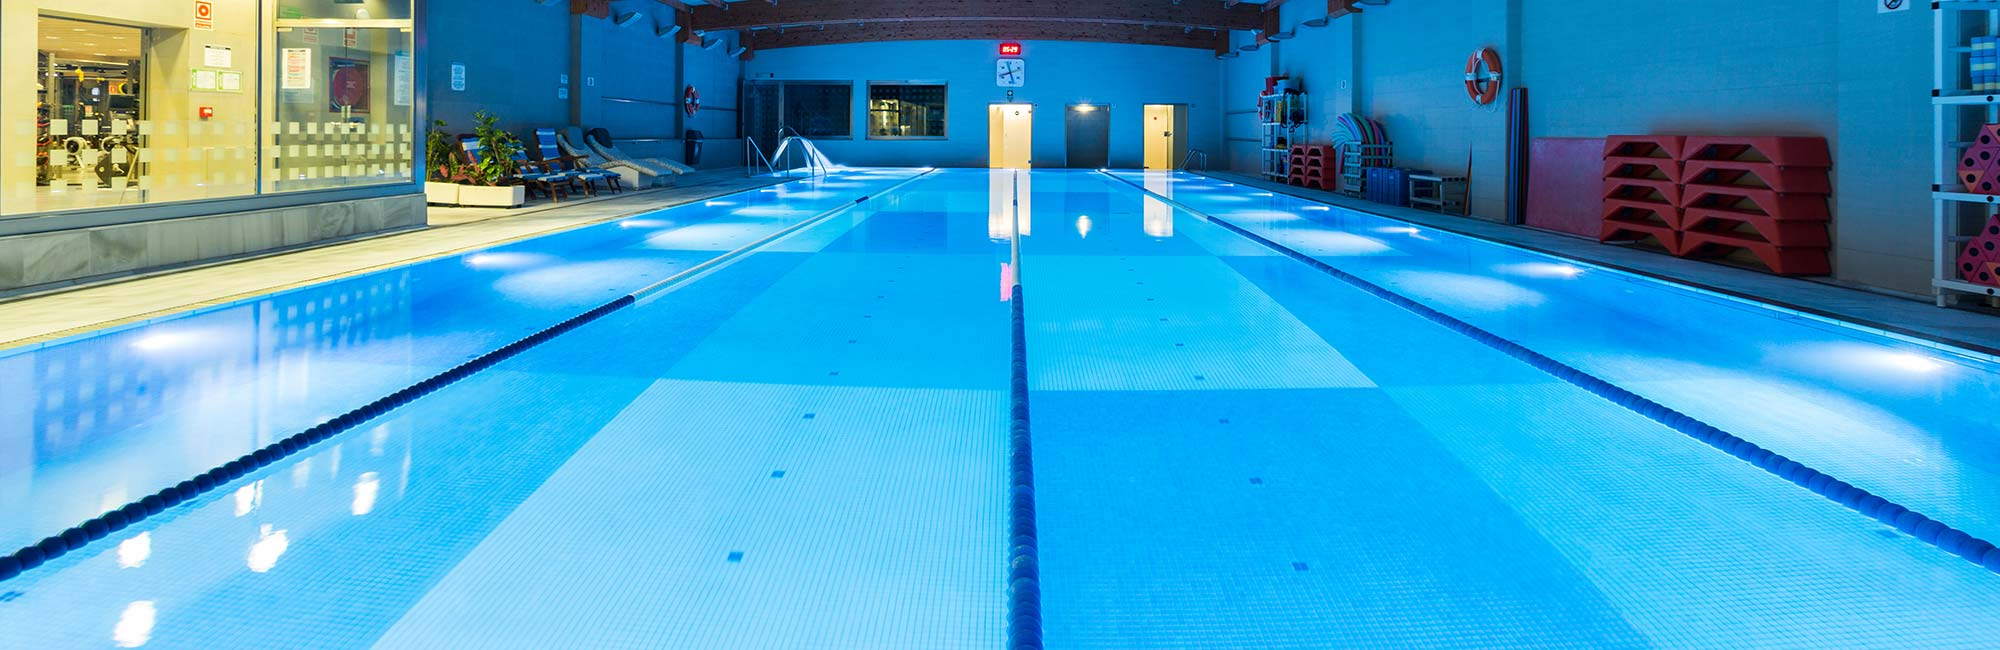 Piscina En Madrid Dir Avinguda Madrid Gyms Dir